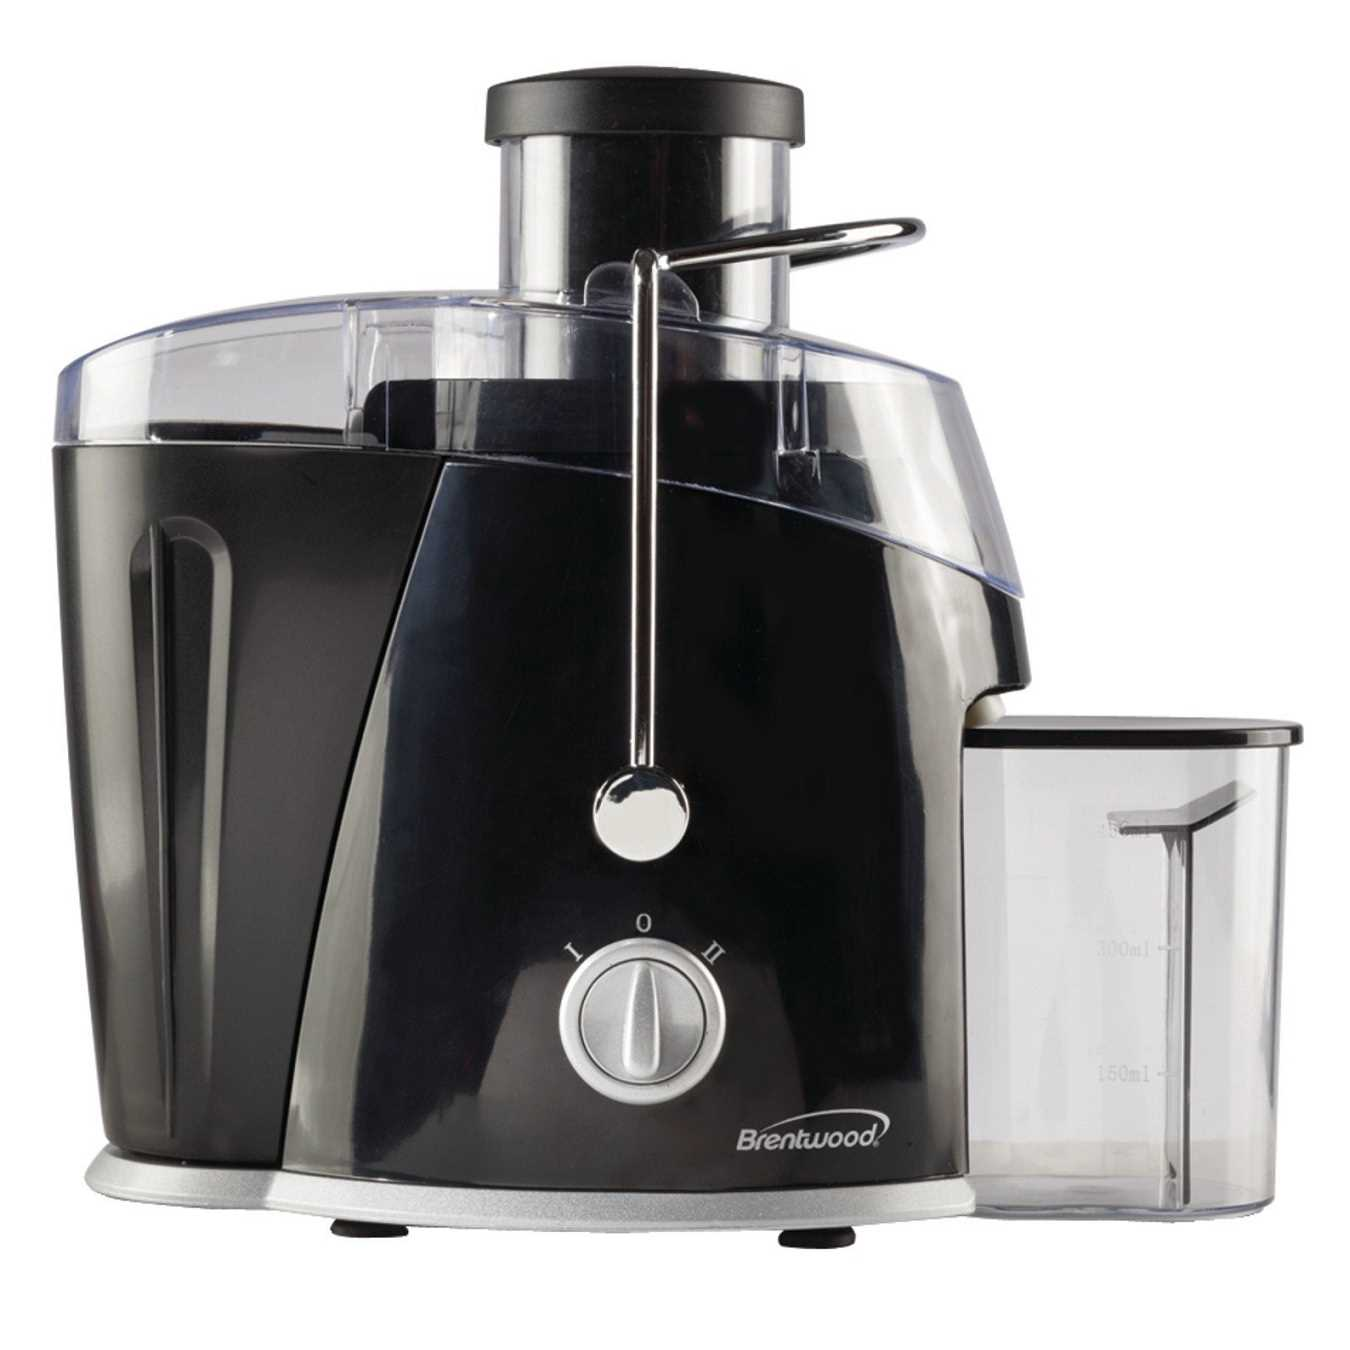 brentwood jc 452 juice extractor